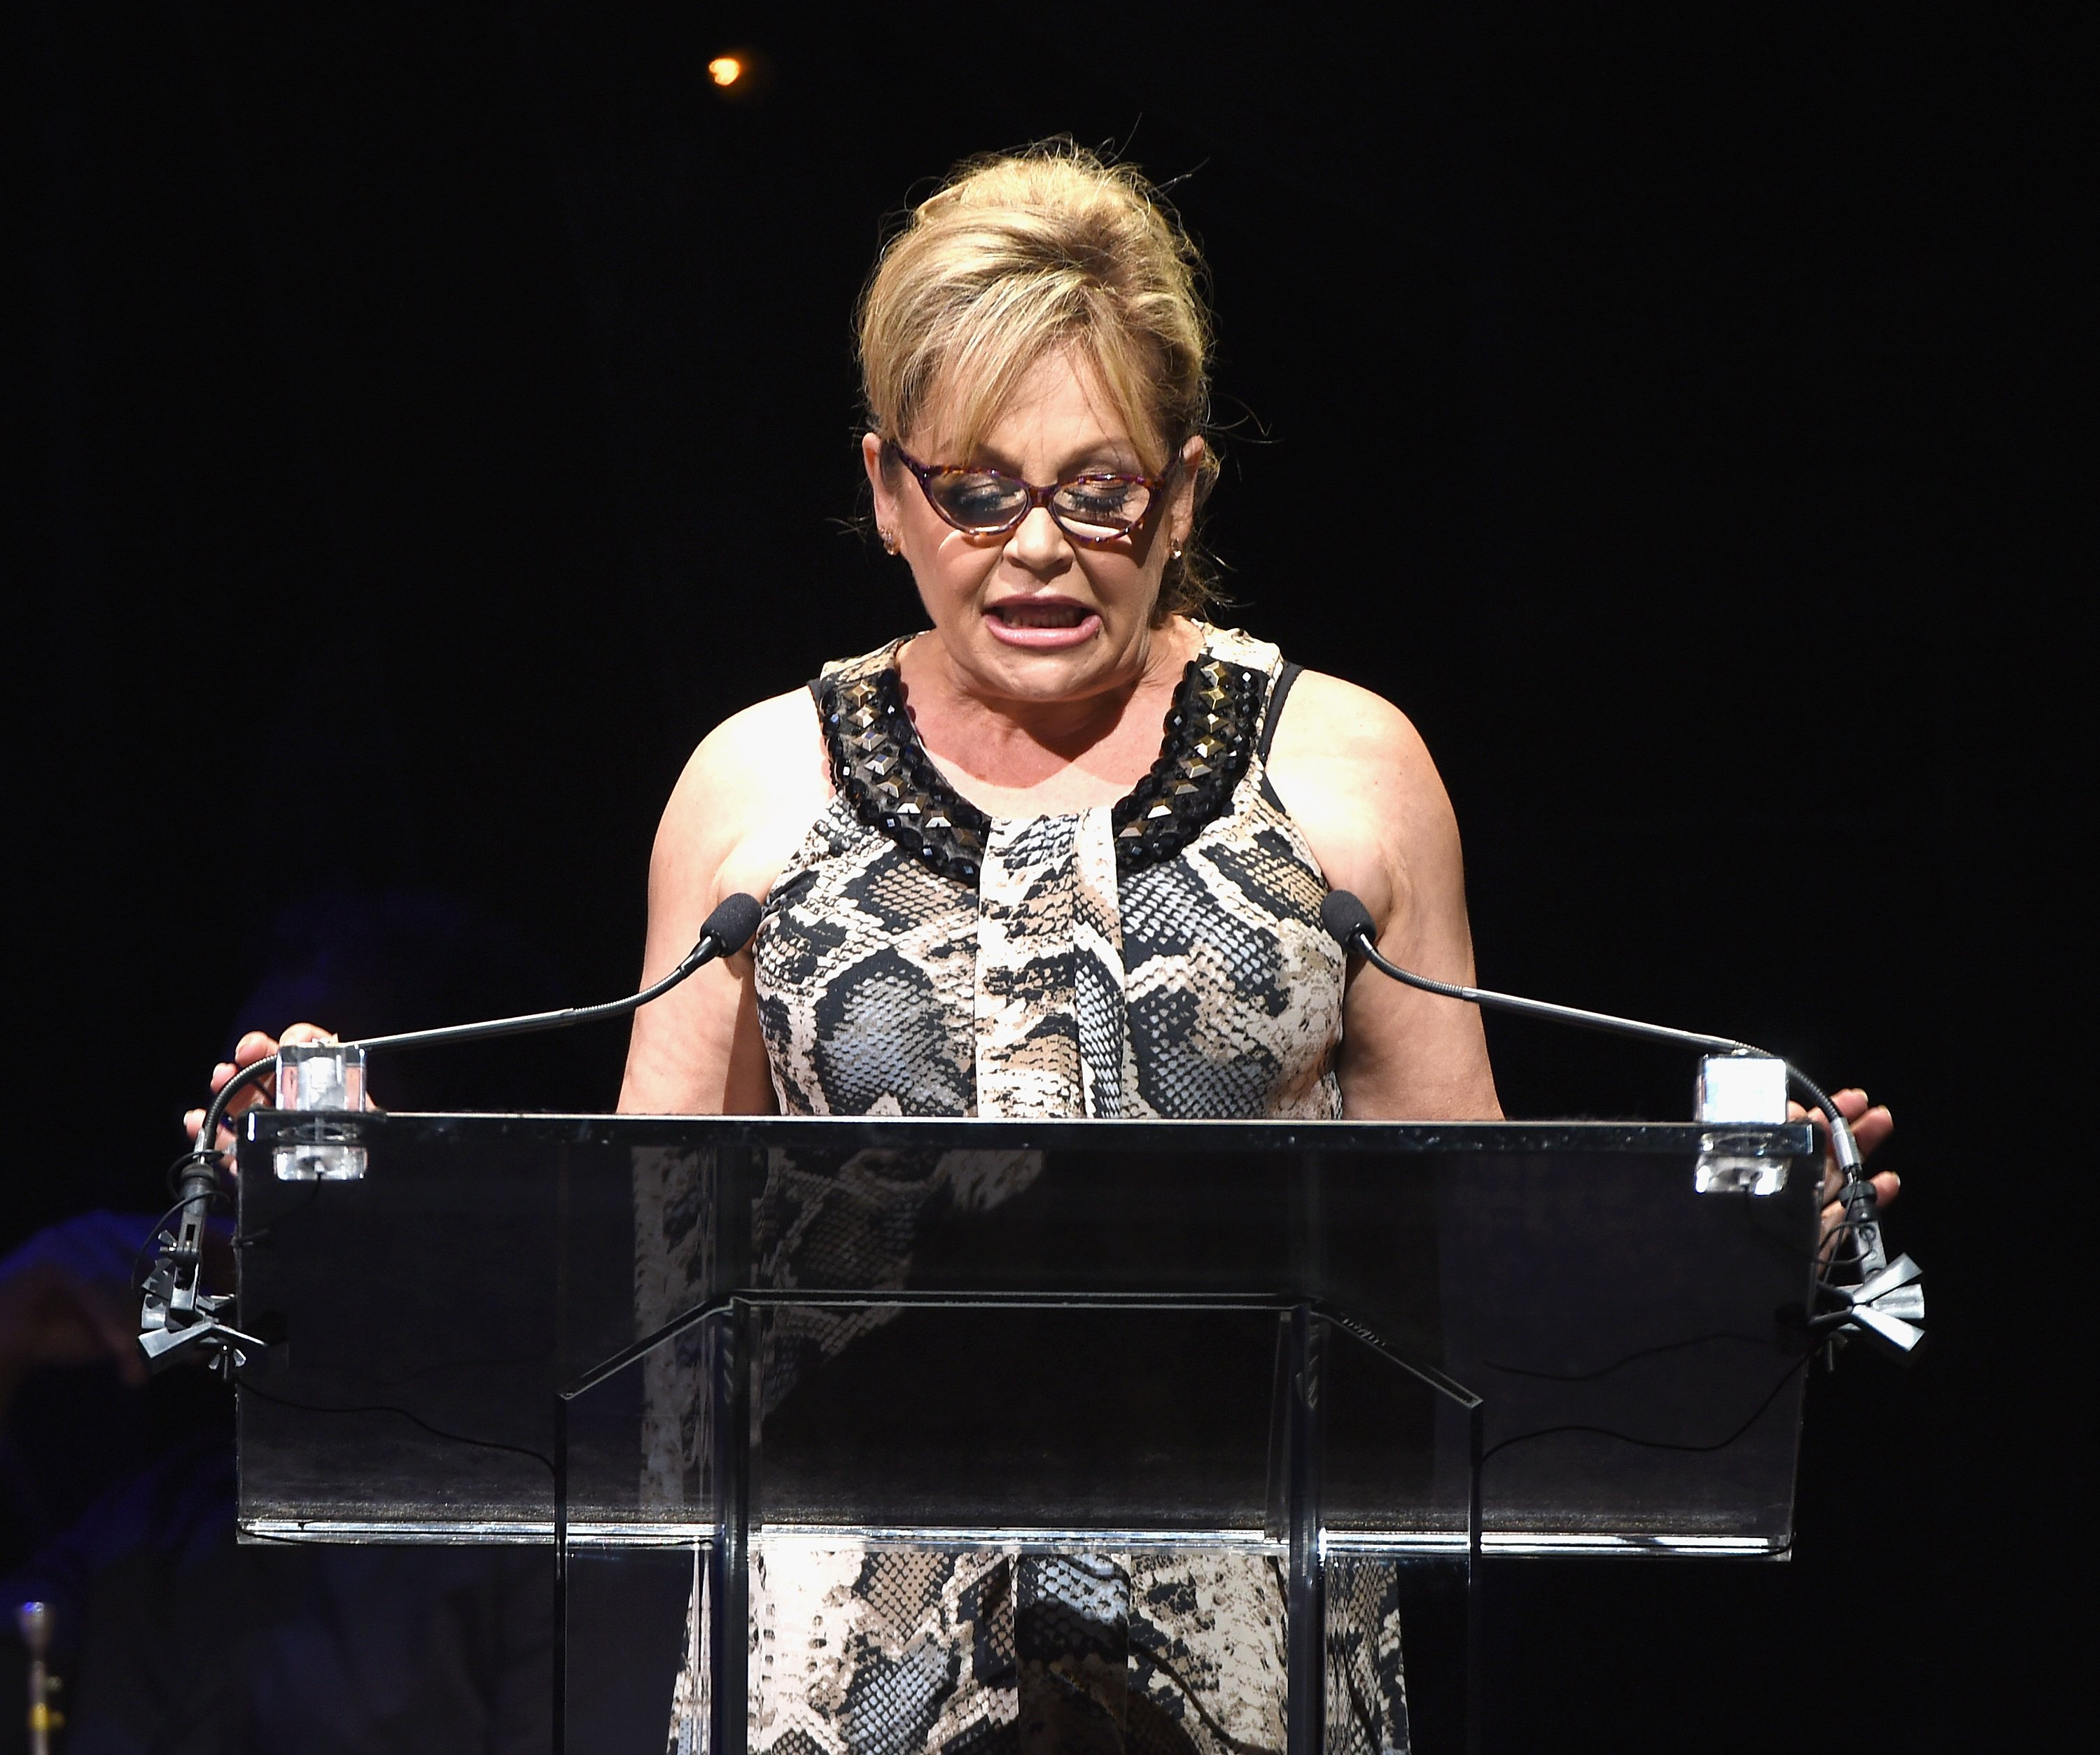 Charlene Tilton speaks on stage during Voices For The Voiceless: Stars For Foster Kids at St James Theater on June 29, 2015 | Photo: GettyImages